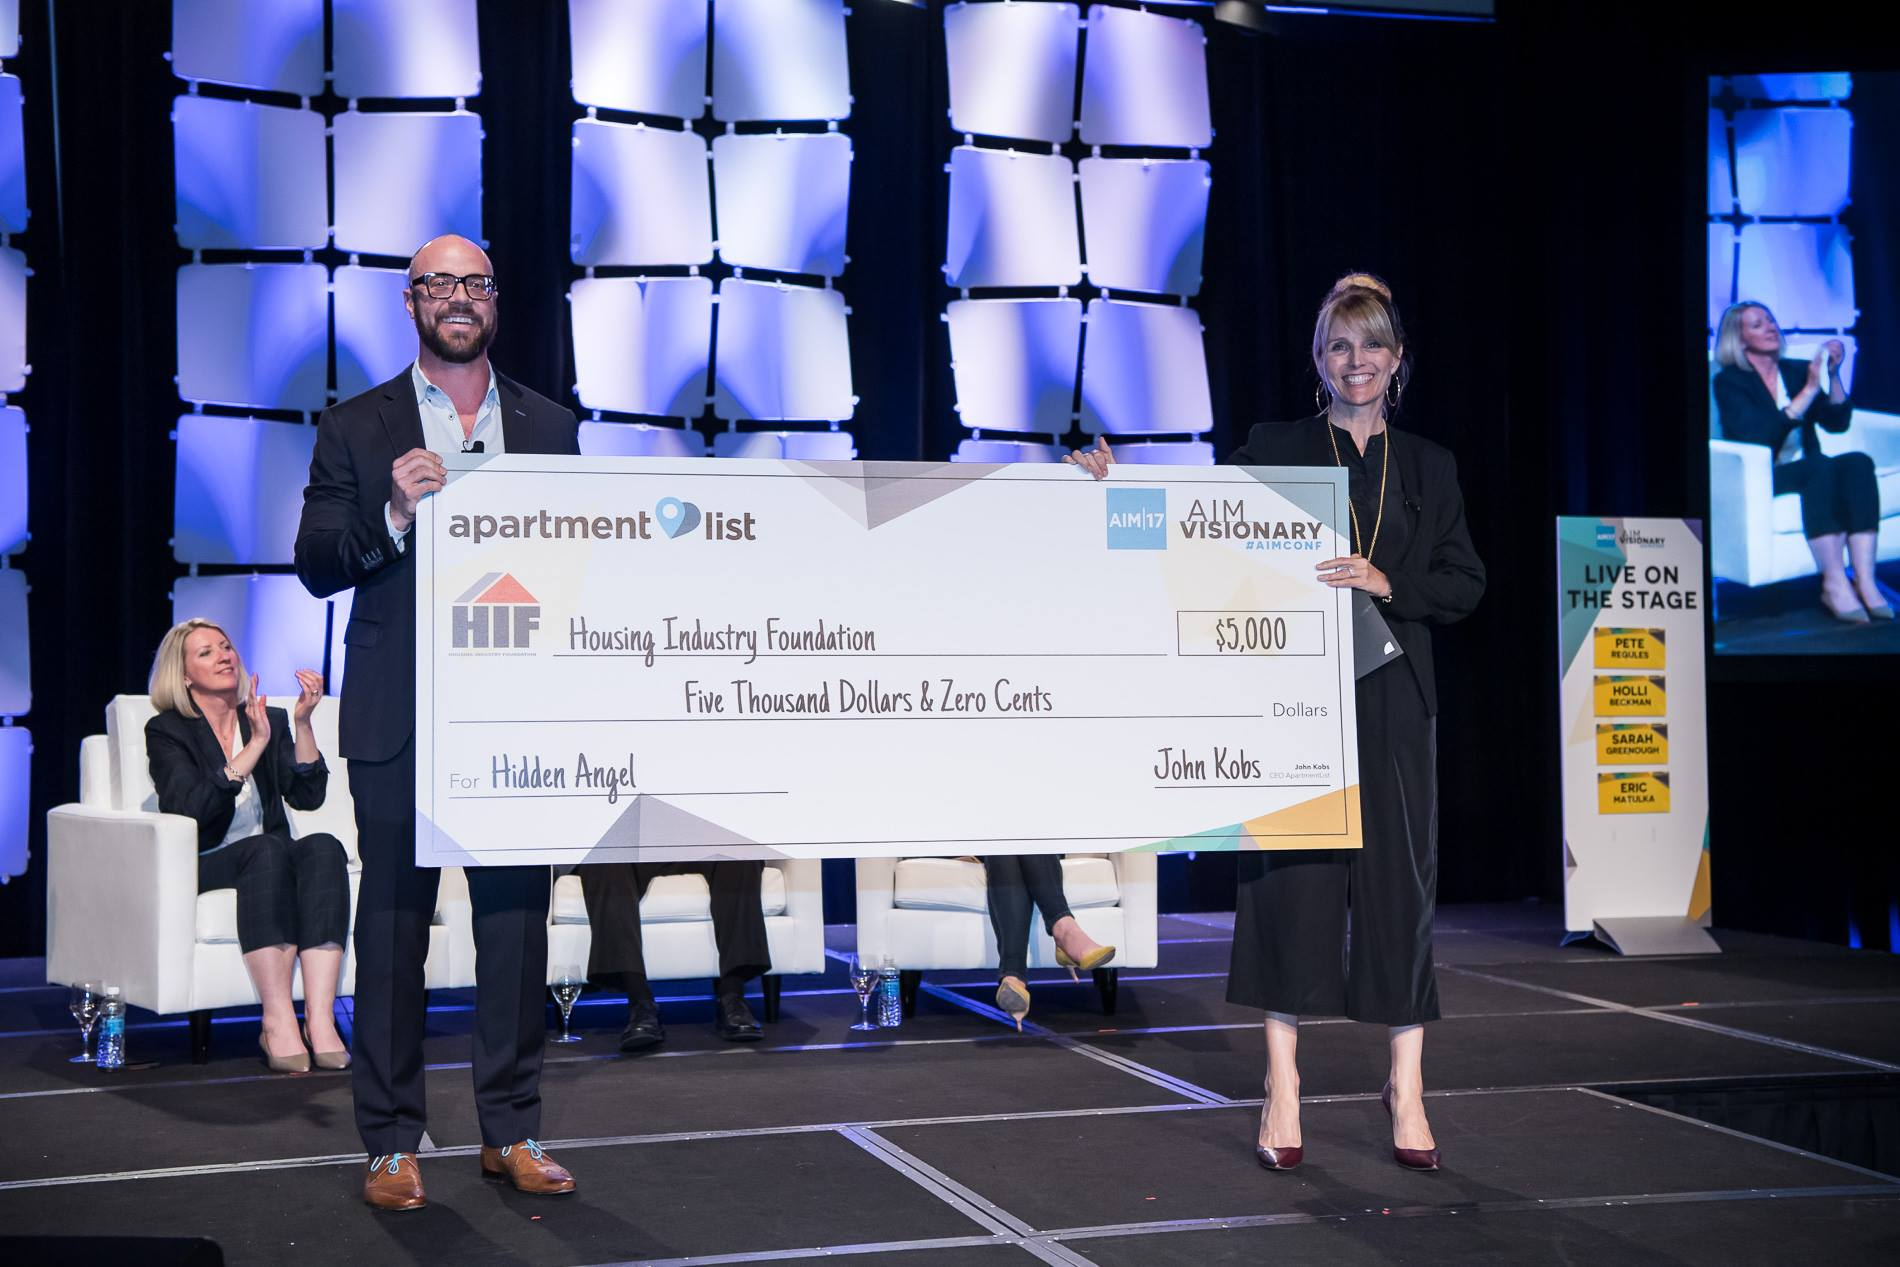 Apartment List donates to the Housing Industry Foundation - May 2017   Apartment List couldn't be more excited to be donating to such an amazing cause in HIF